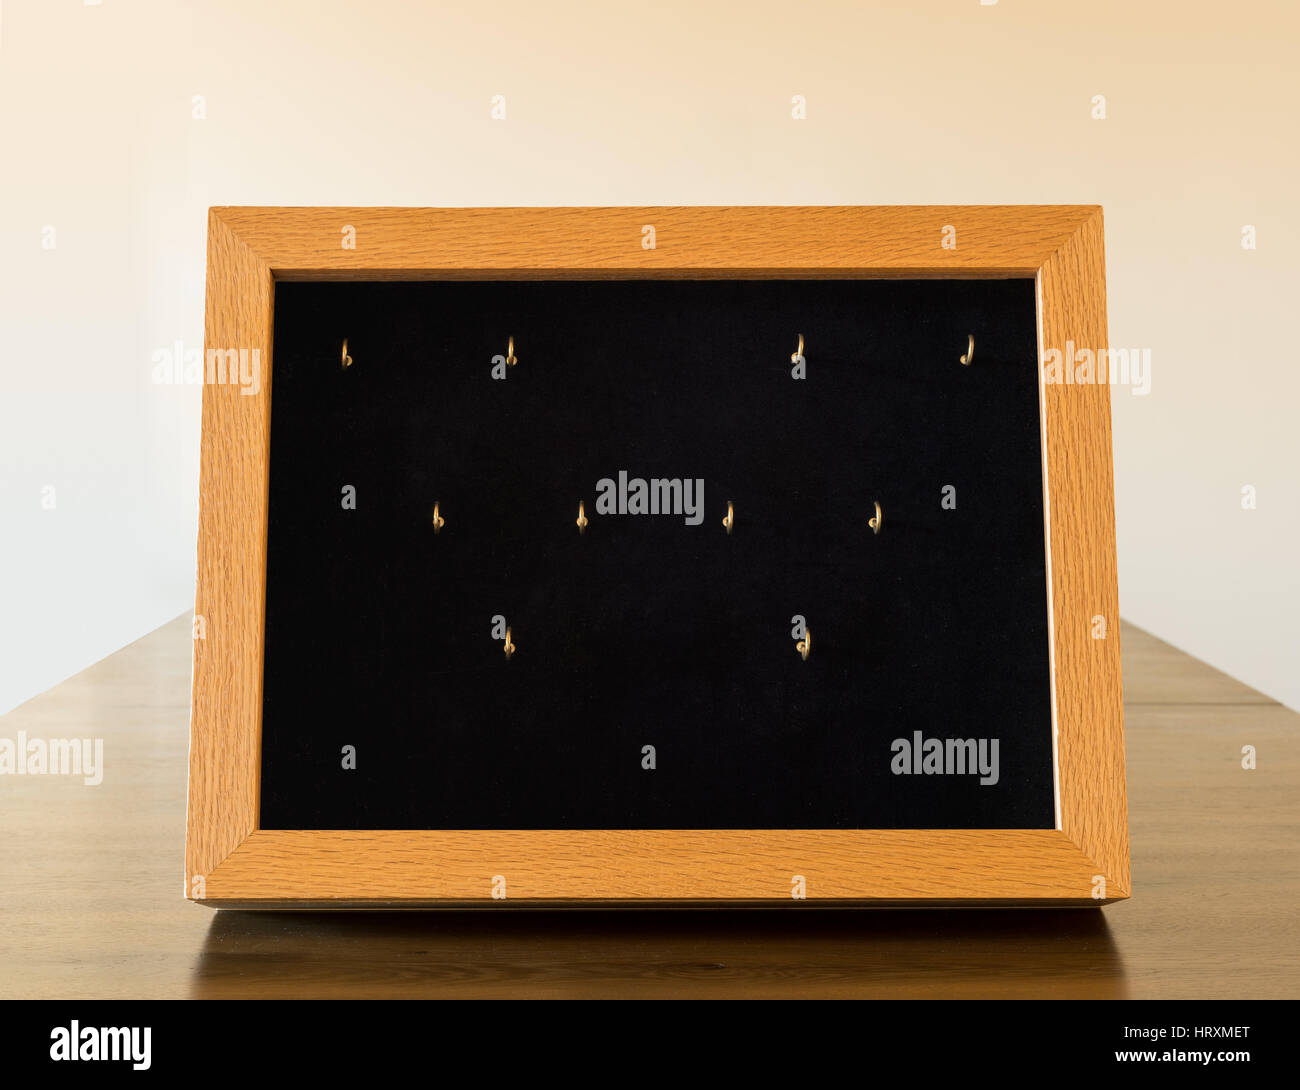 Wooden display case with glass window to show small jewelry or products in store or art fair - Stock Image